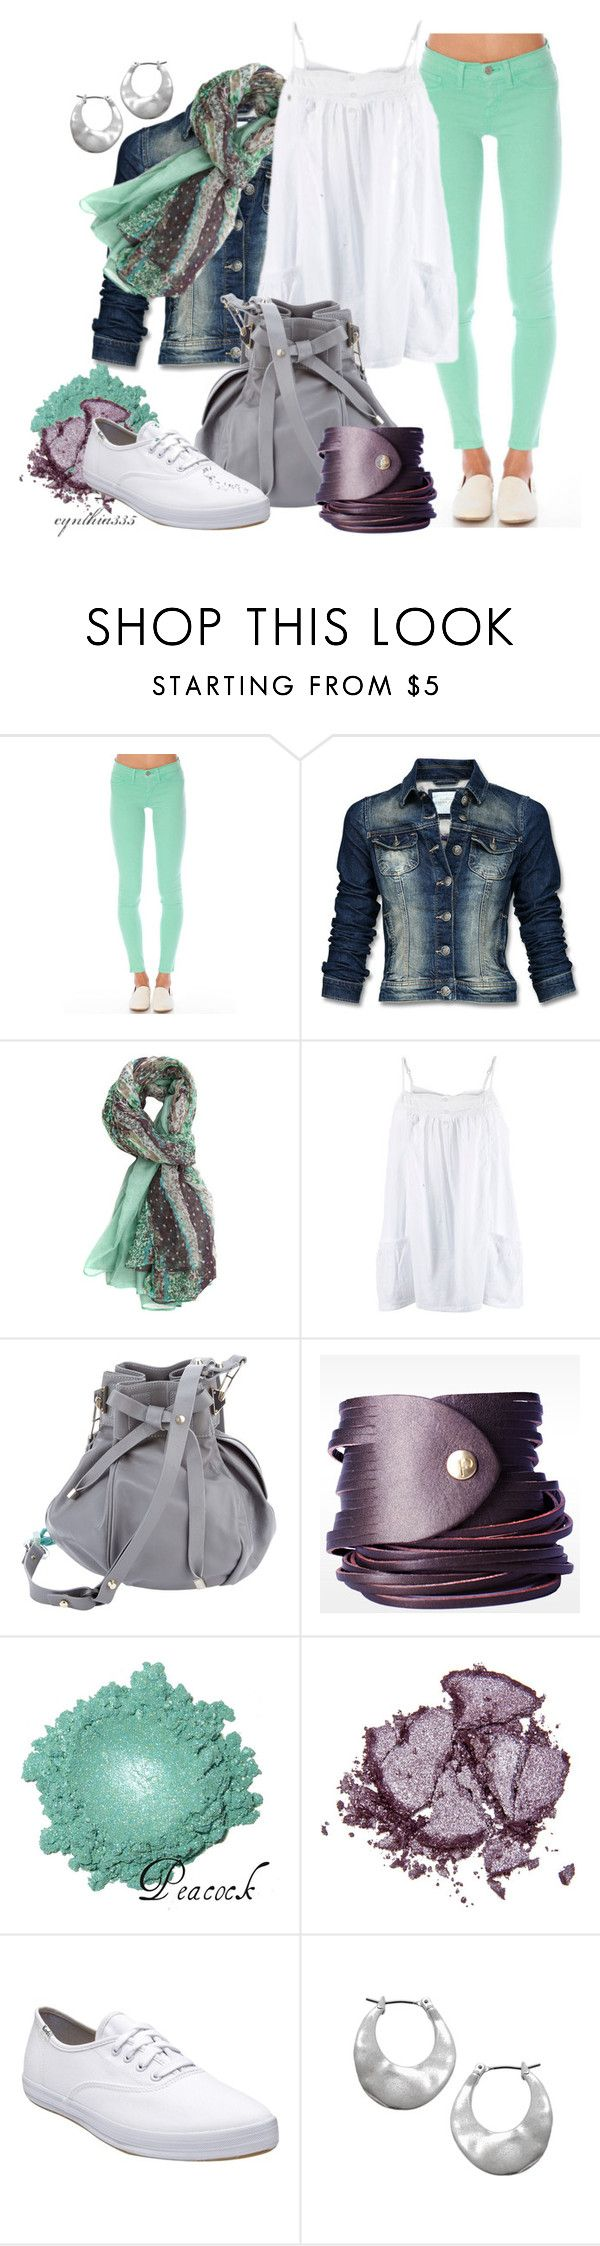 """Sea Foam and Violet"" by cynthia335 ❤ liked on Polyvore featuring Flying Monkey, Mexx, Pauric Sweeney, Linea Pelle, Stila, Keds and Kenneth Cole"